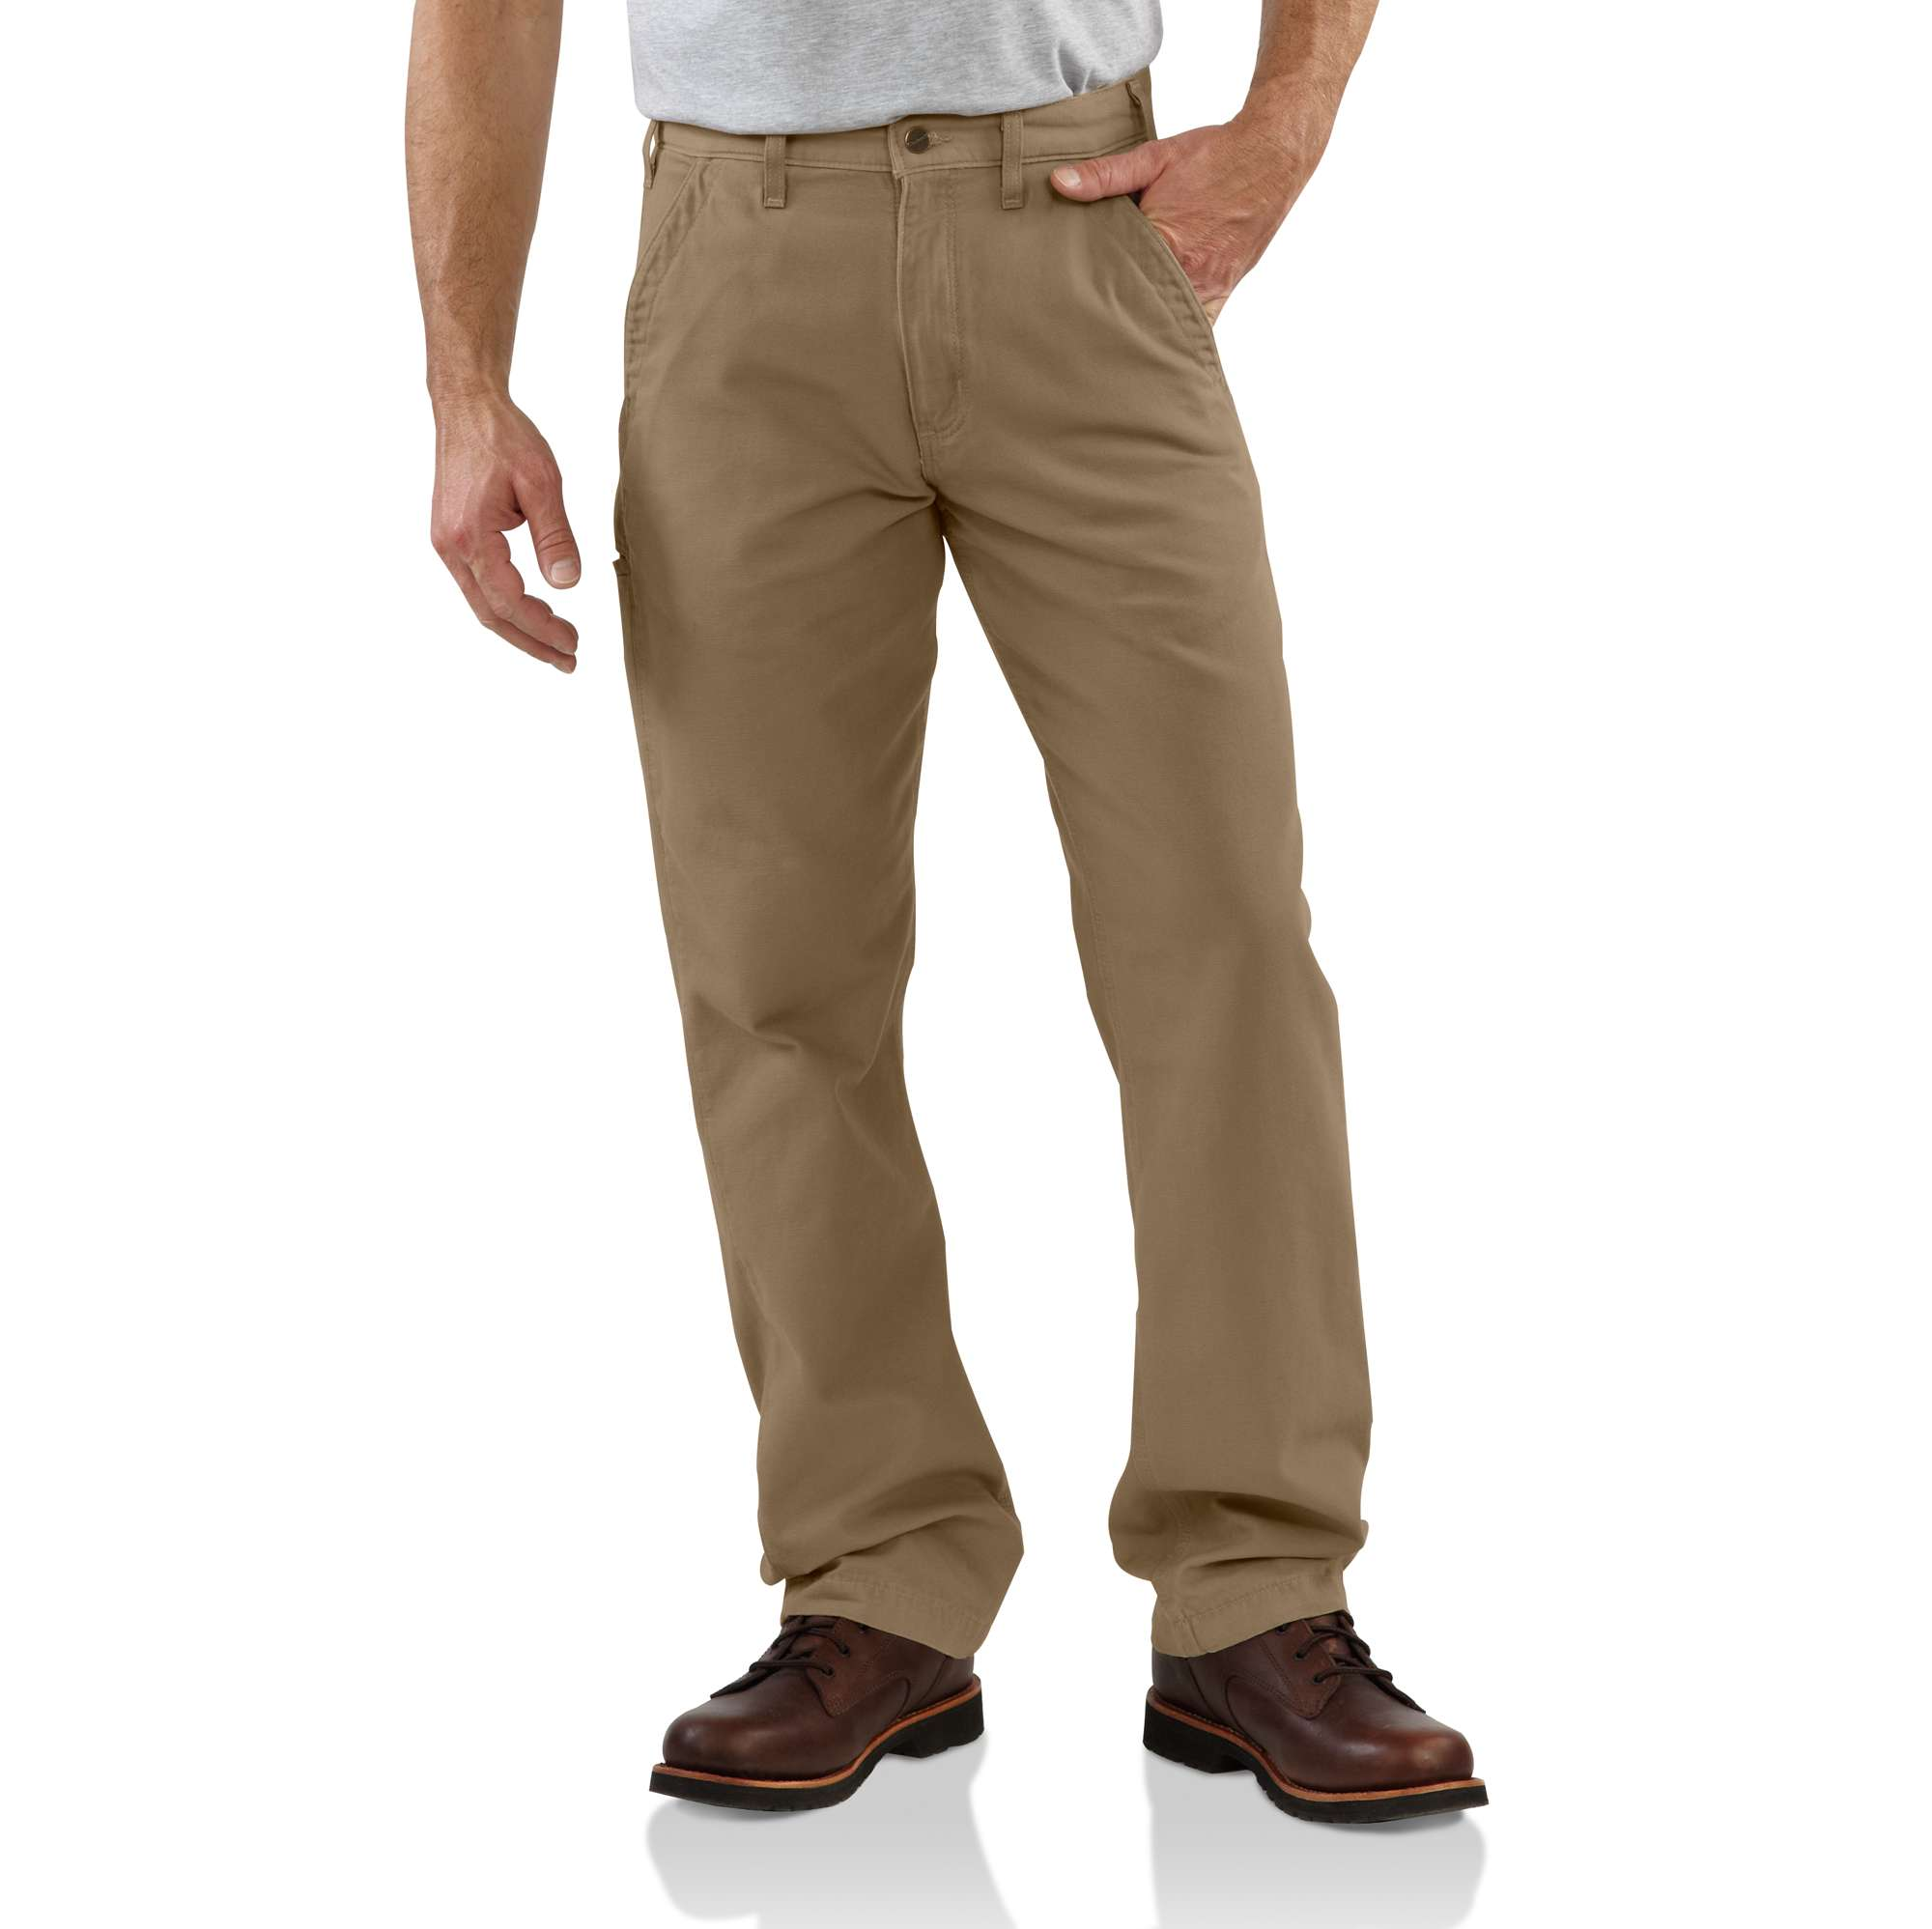 Carhartt Canvas Khaki Relaxed Fit Pant